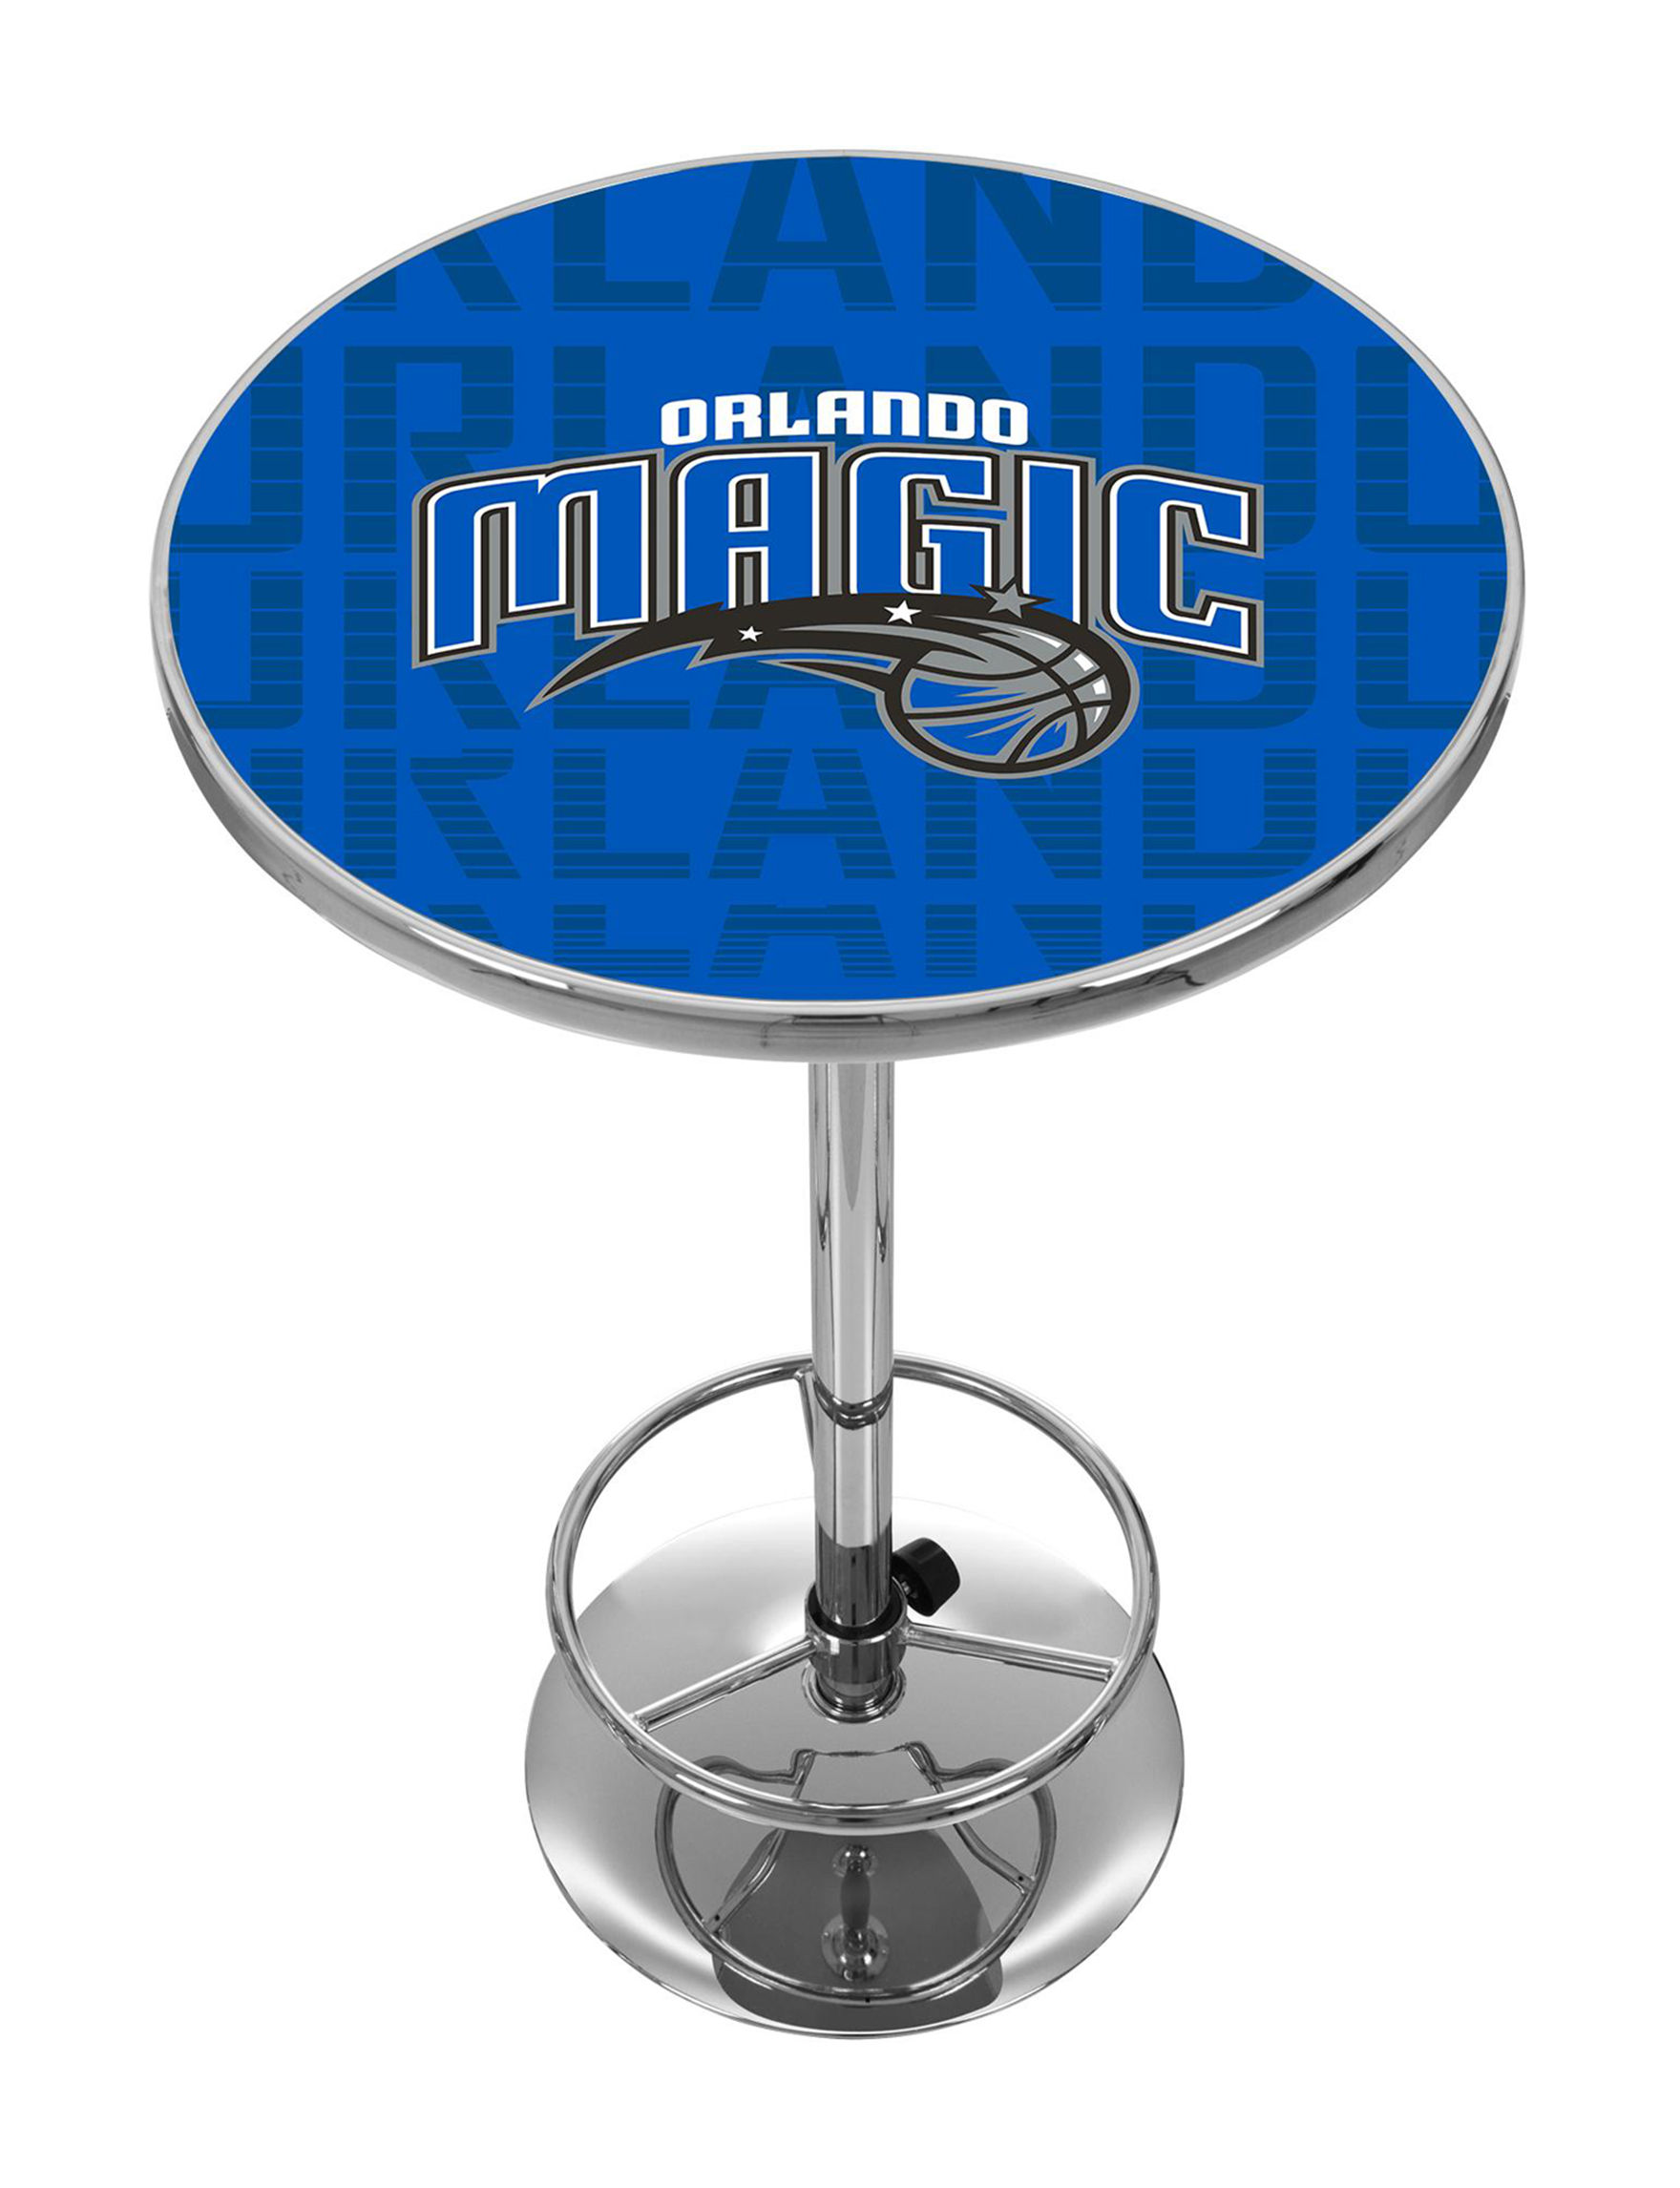 NBA Blue / White / Black Dining Tables Kitchen & Dining Furniture NBA